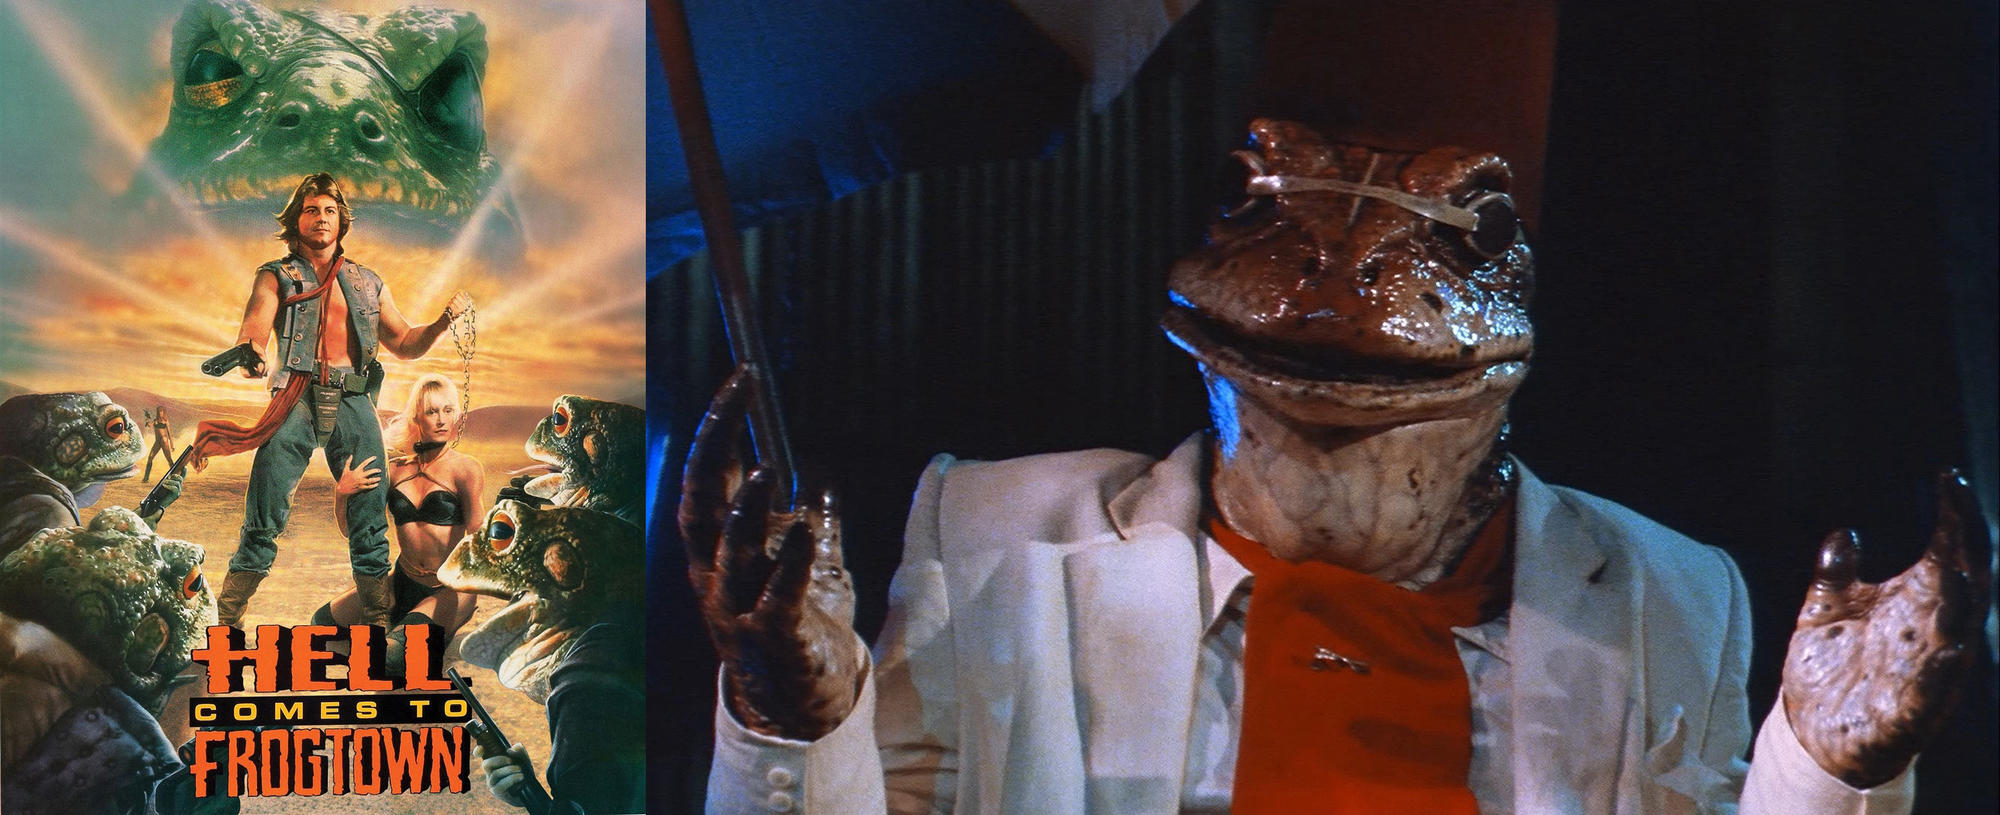 《Hell comes to frogtown》(1988)中的青蛙怪人